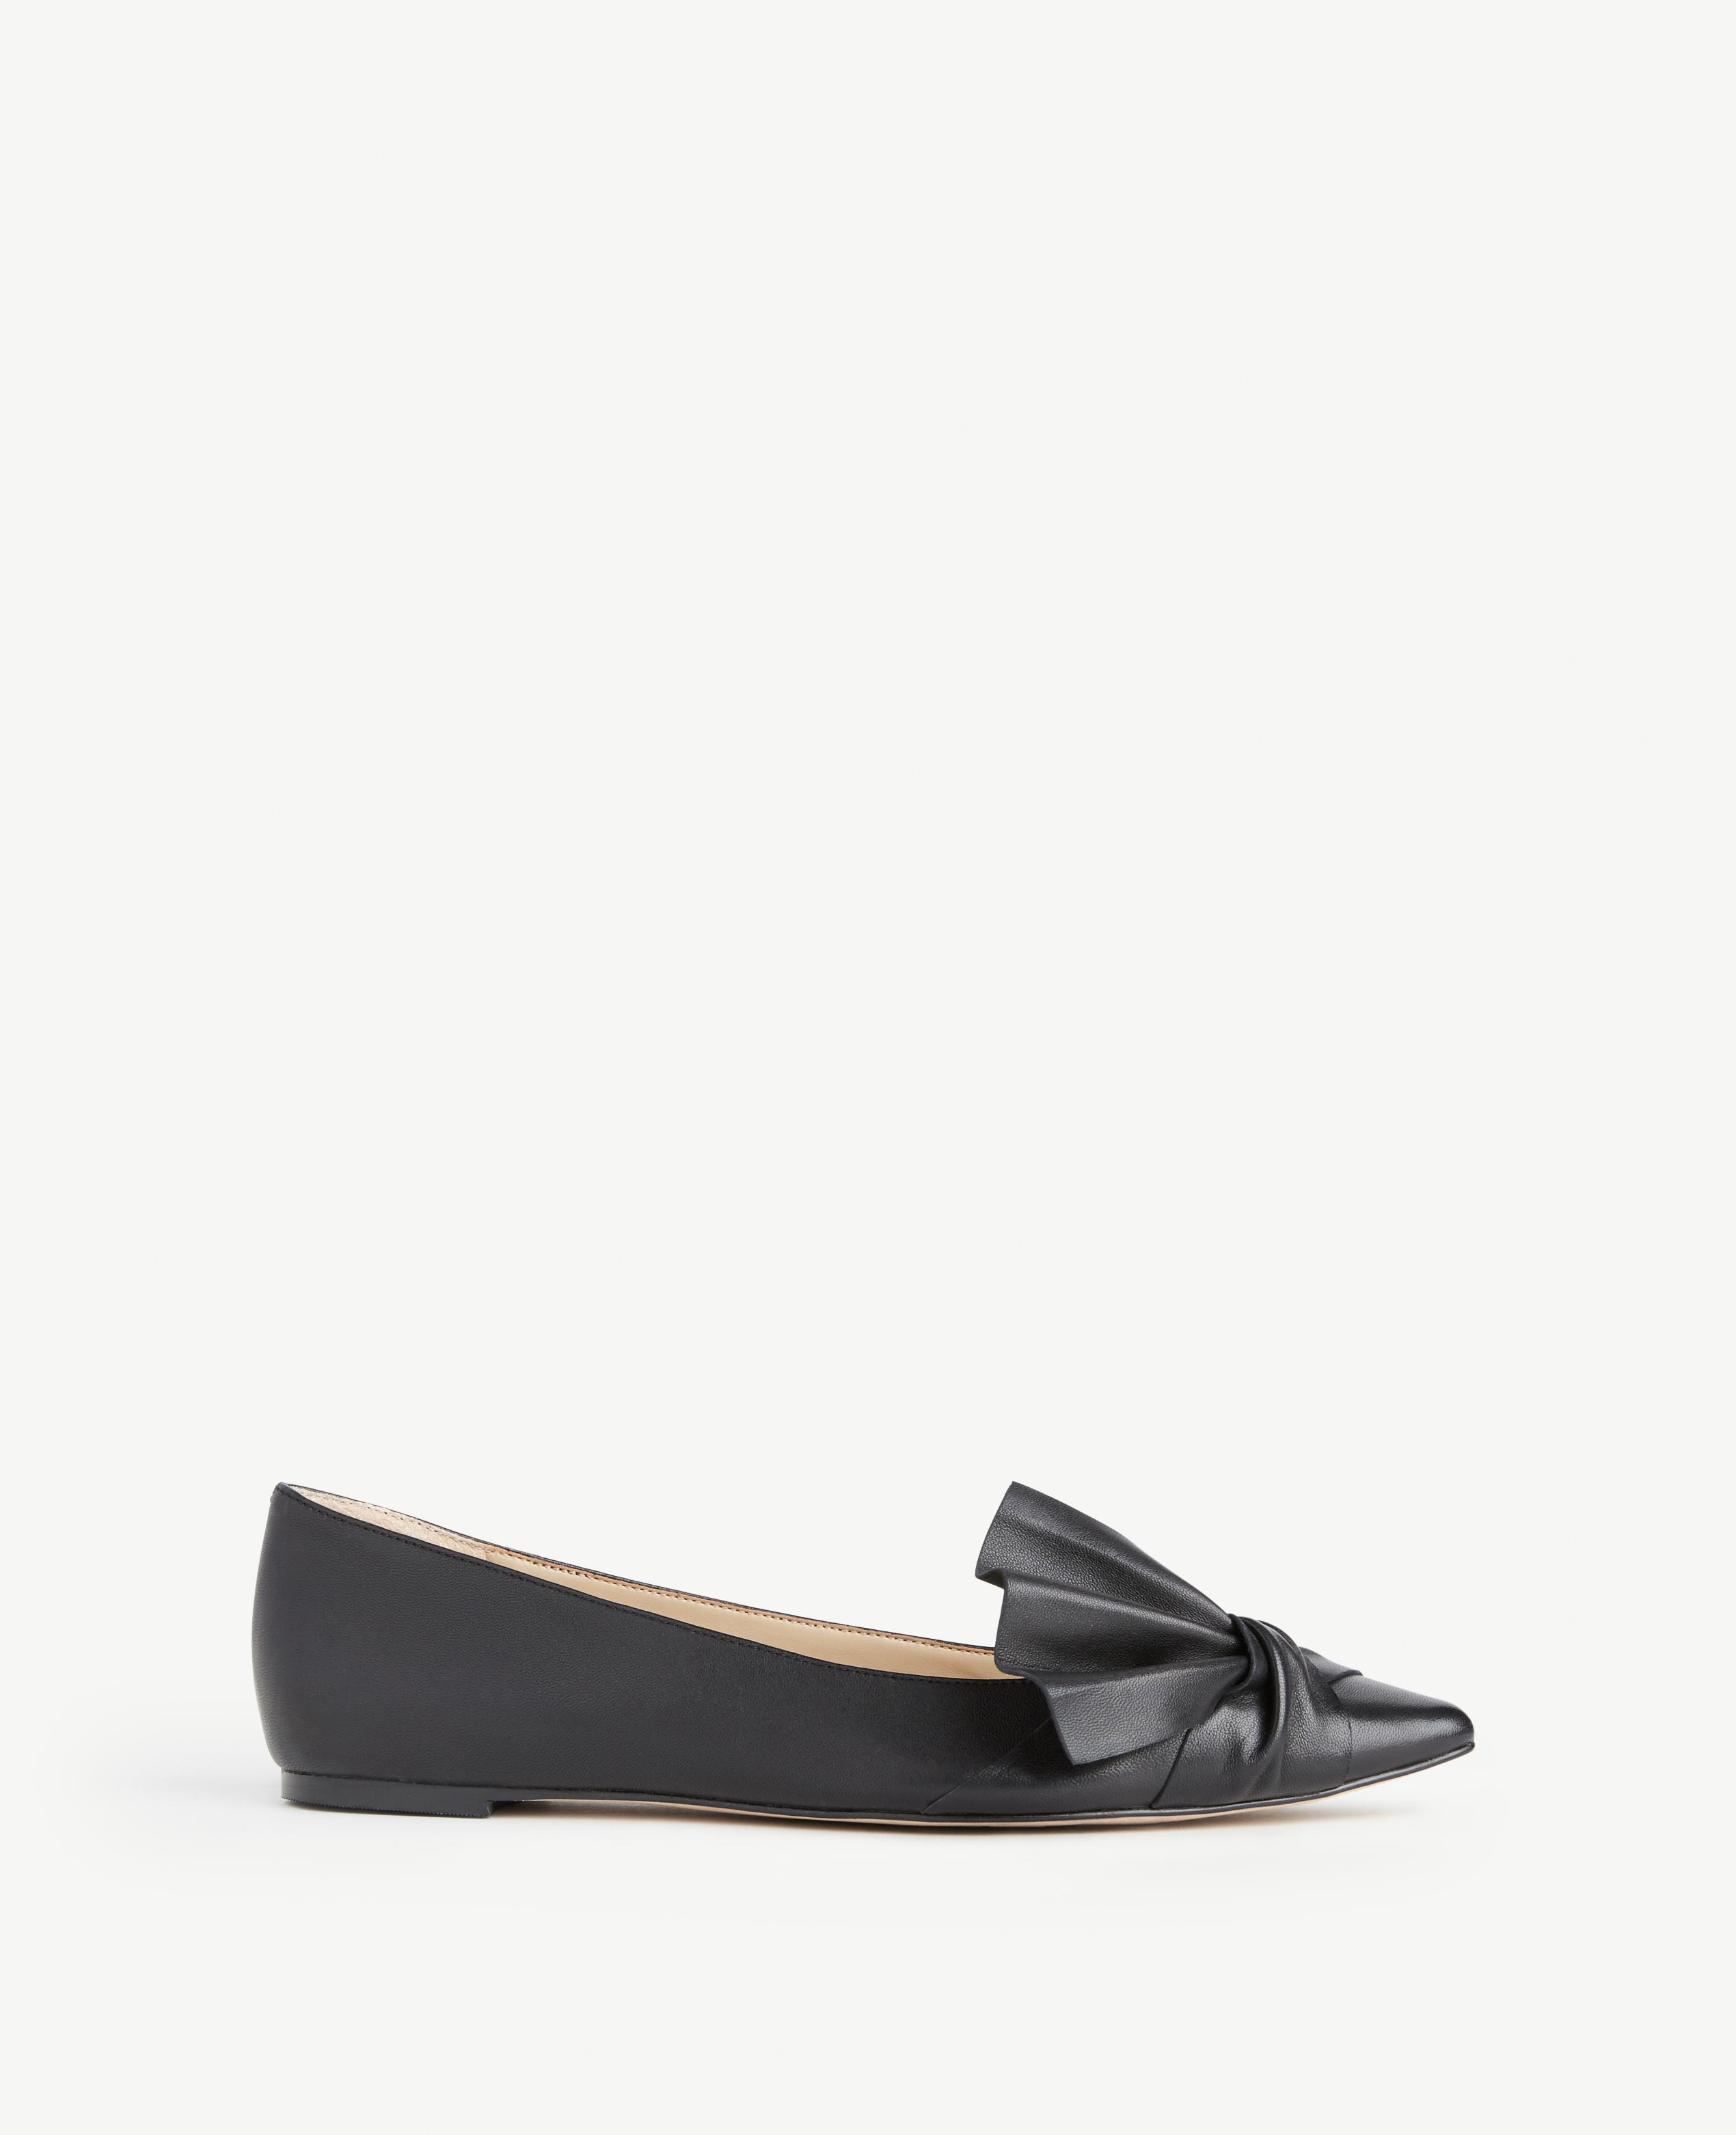 Ann Taylor Suede Eula Leather Bow Flats In Black Lyst